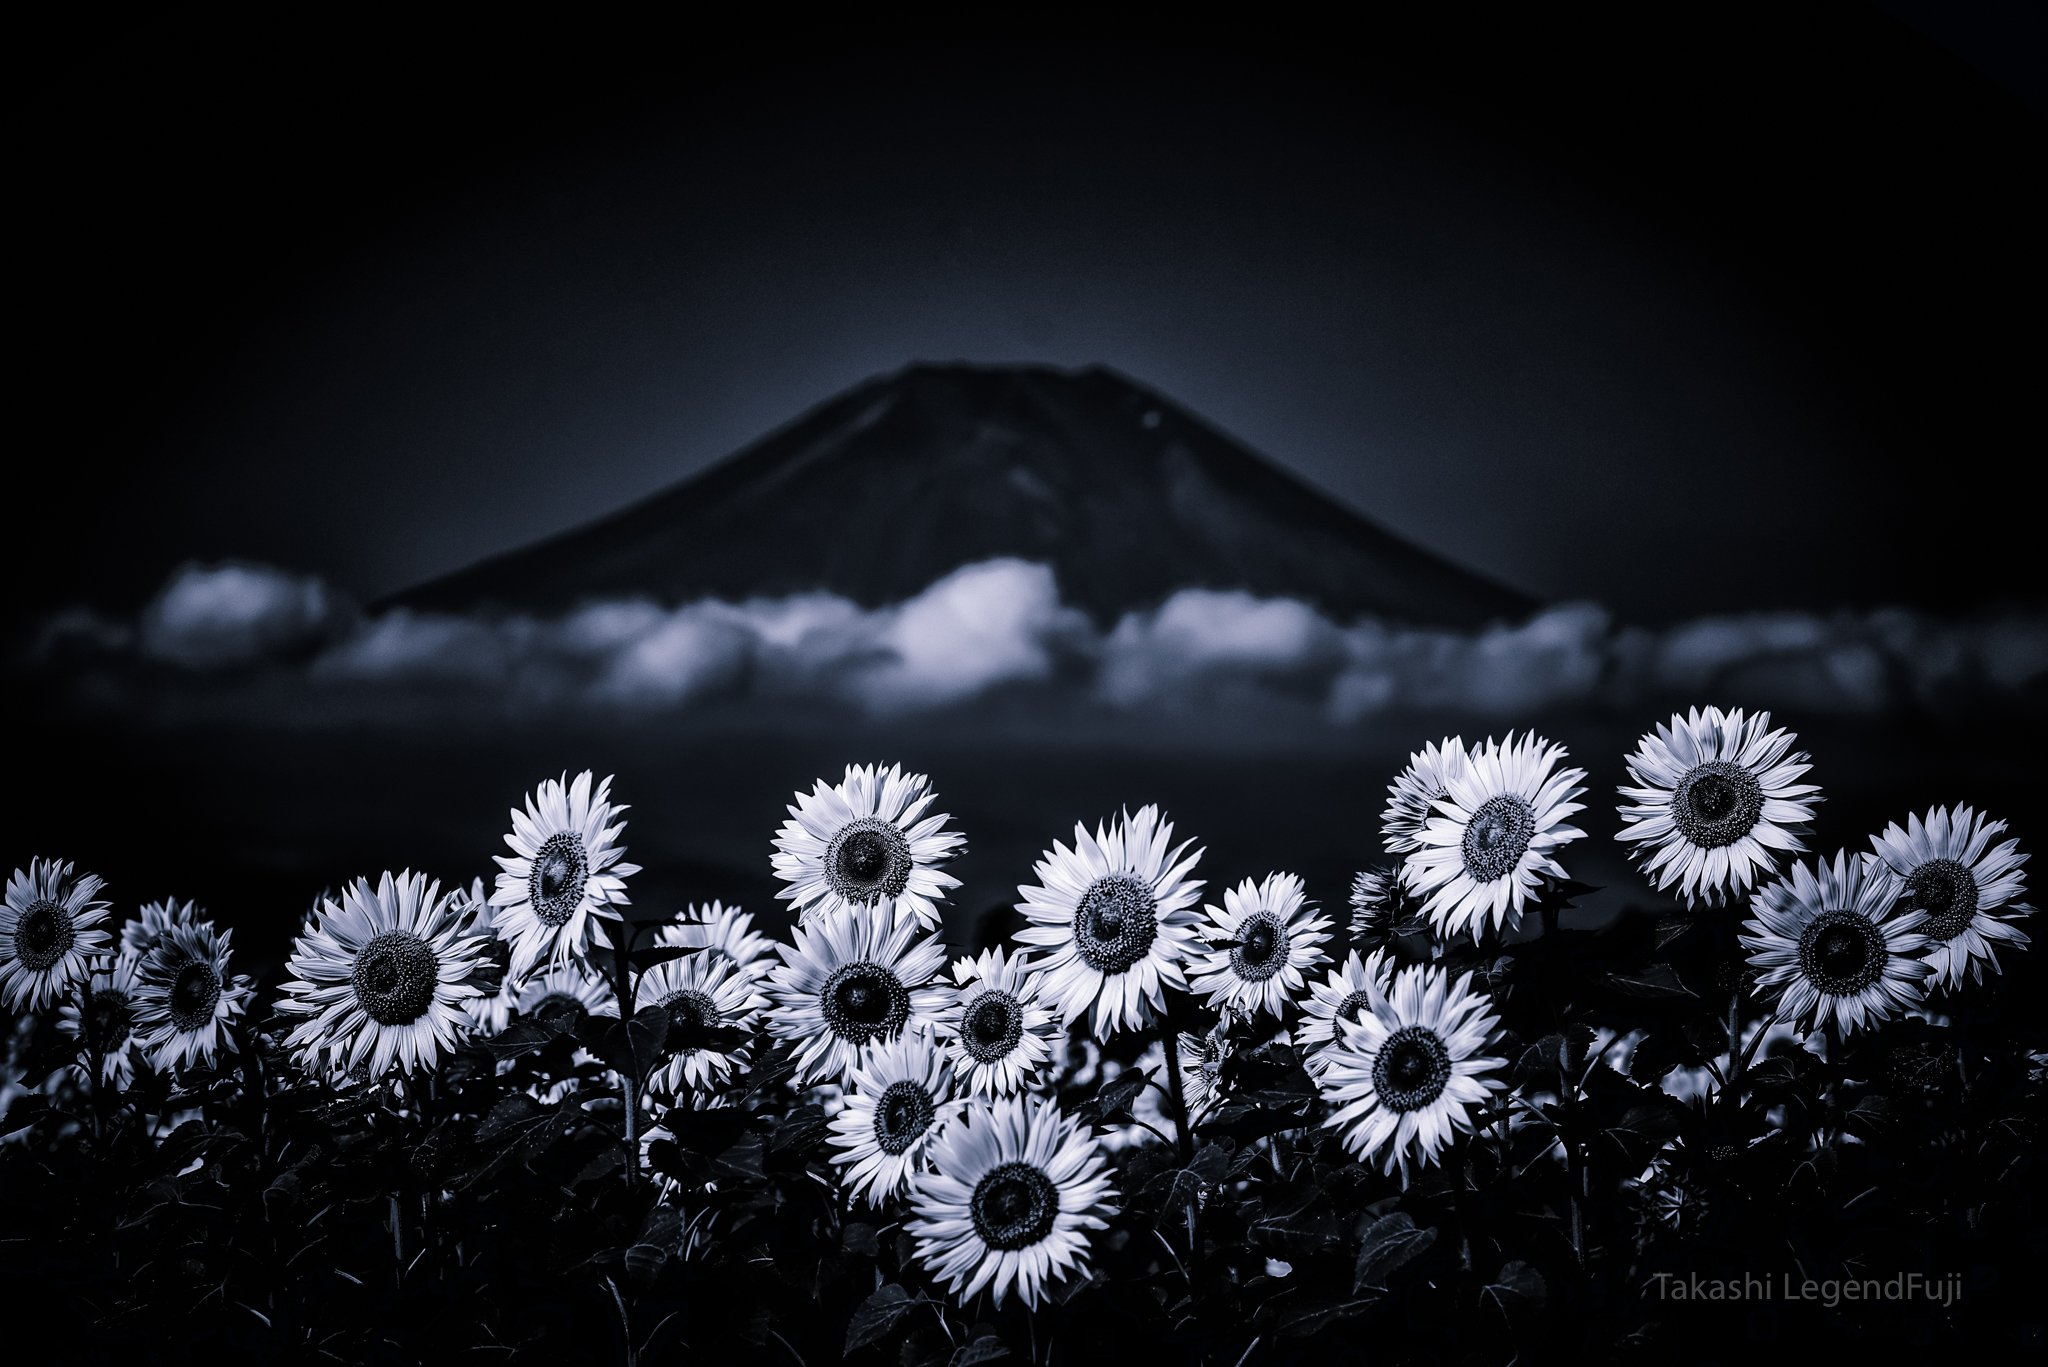 fuji,japan,mountain,flower,sun flower,cloud,blue,, Takashi